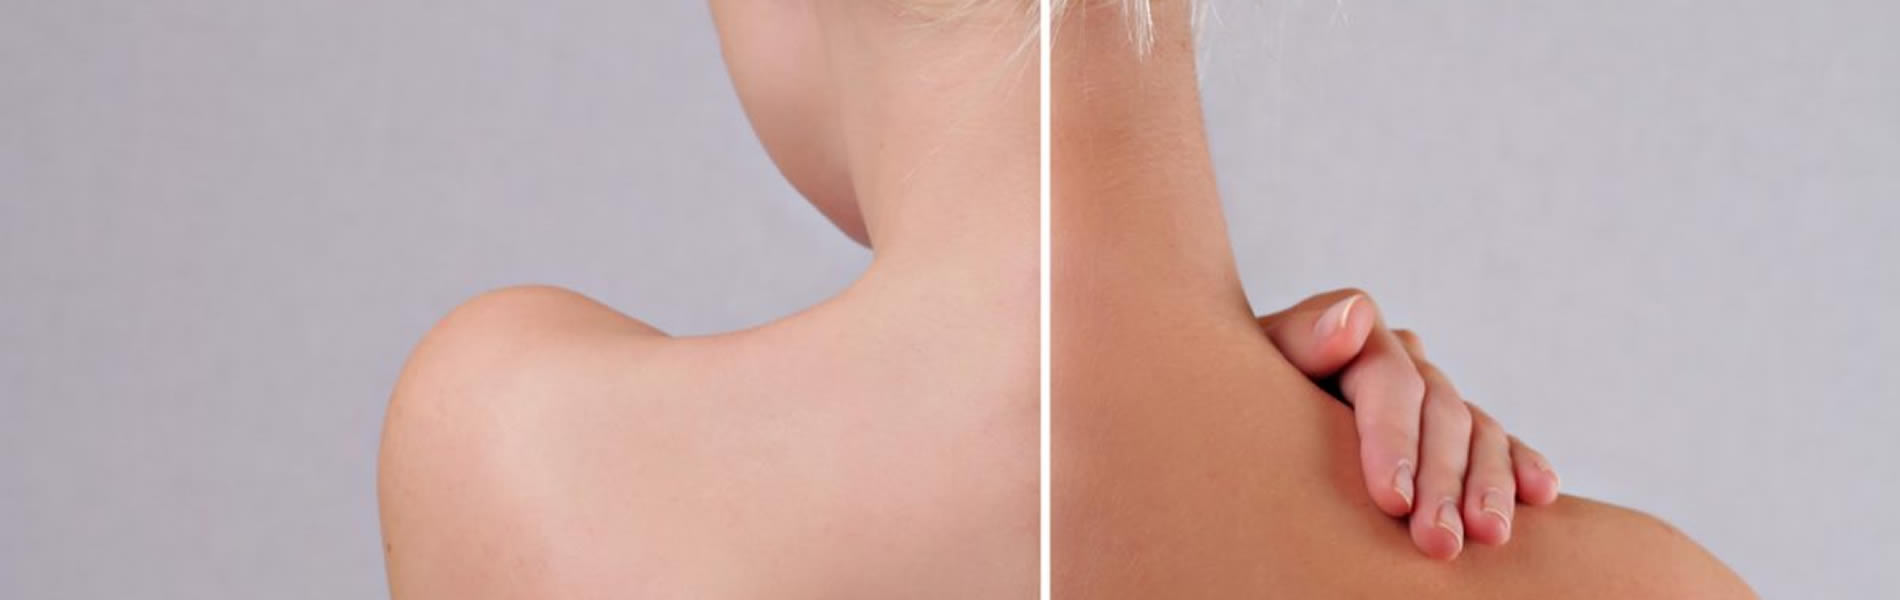 Before-After-Tanning